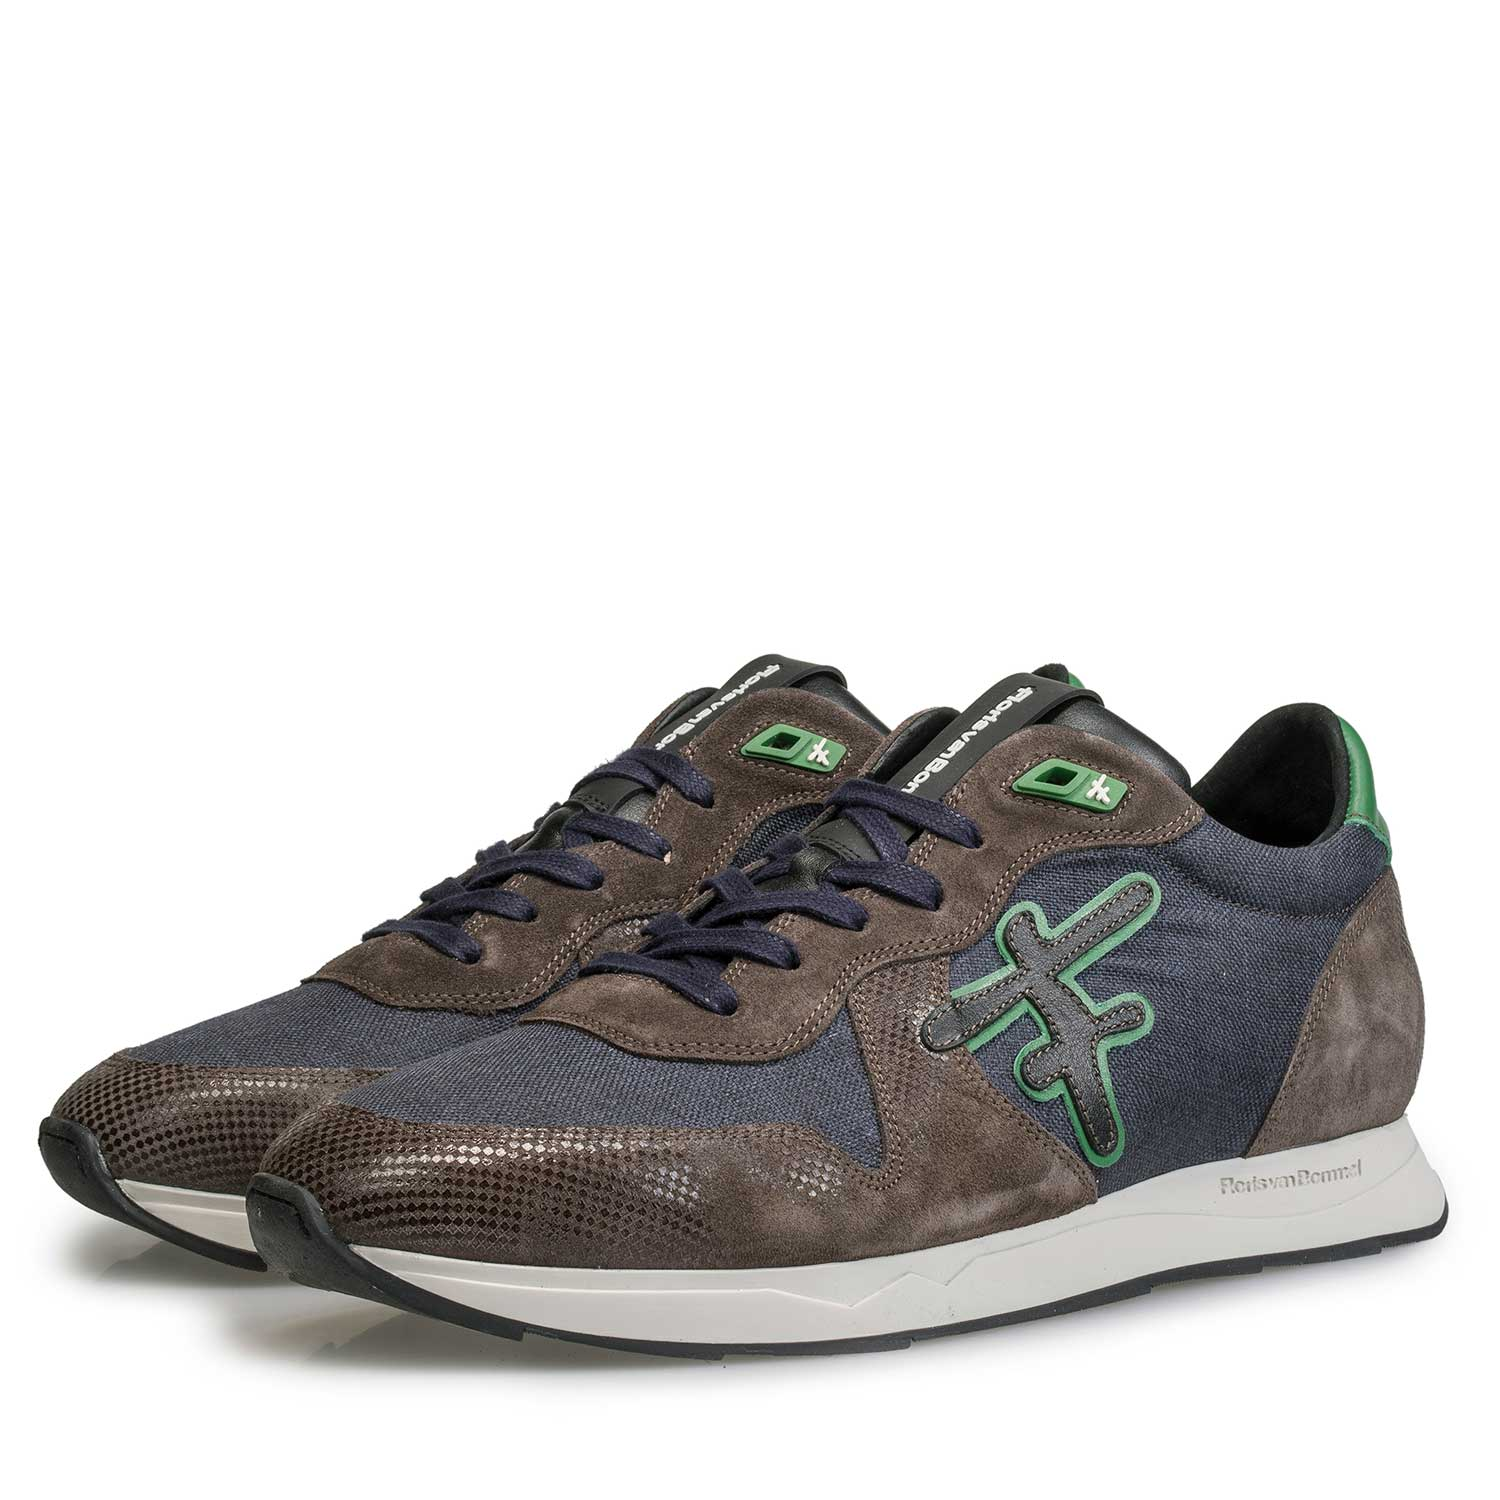 16226/03 - Blue/ Green canvas sneaker with green accents